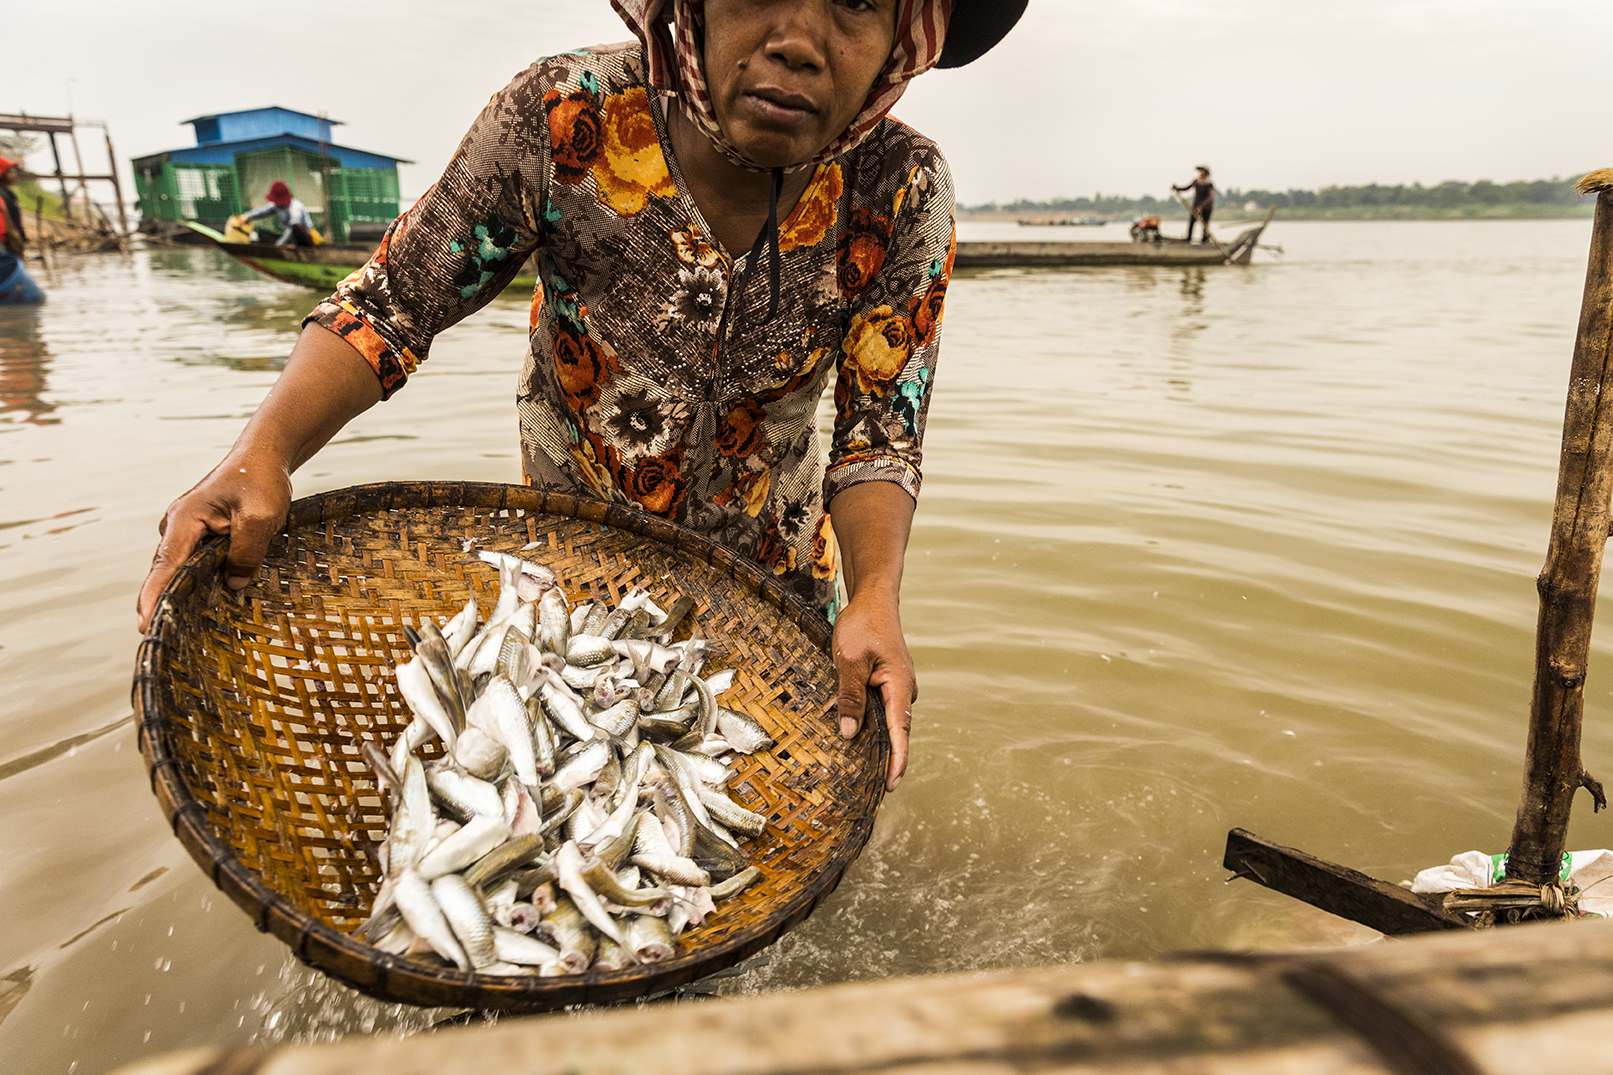 A woman washes scaled fish on the Mekong River in Cambodia, where UW researchers from the College of the Environment, College of Engineering and School of Public Health investigate the influence of environmental changes on the future of food security. (Photo by Mark Stone)